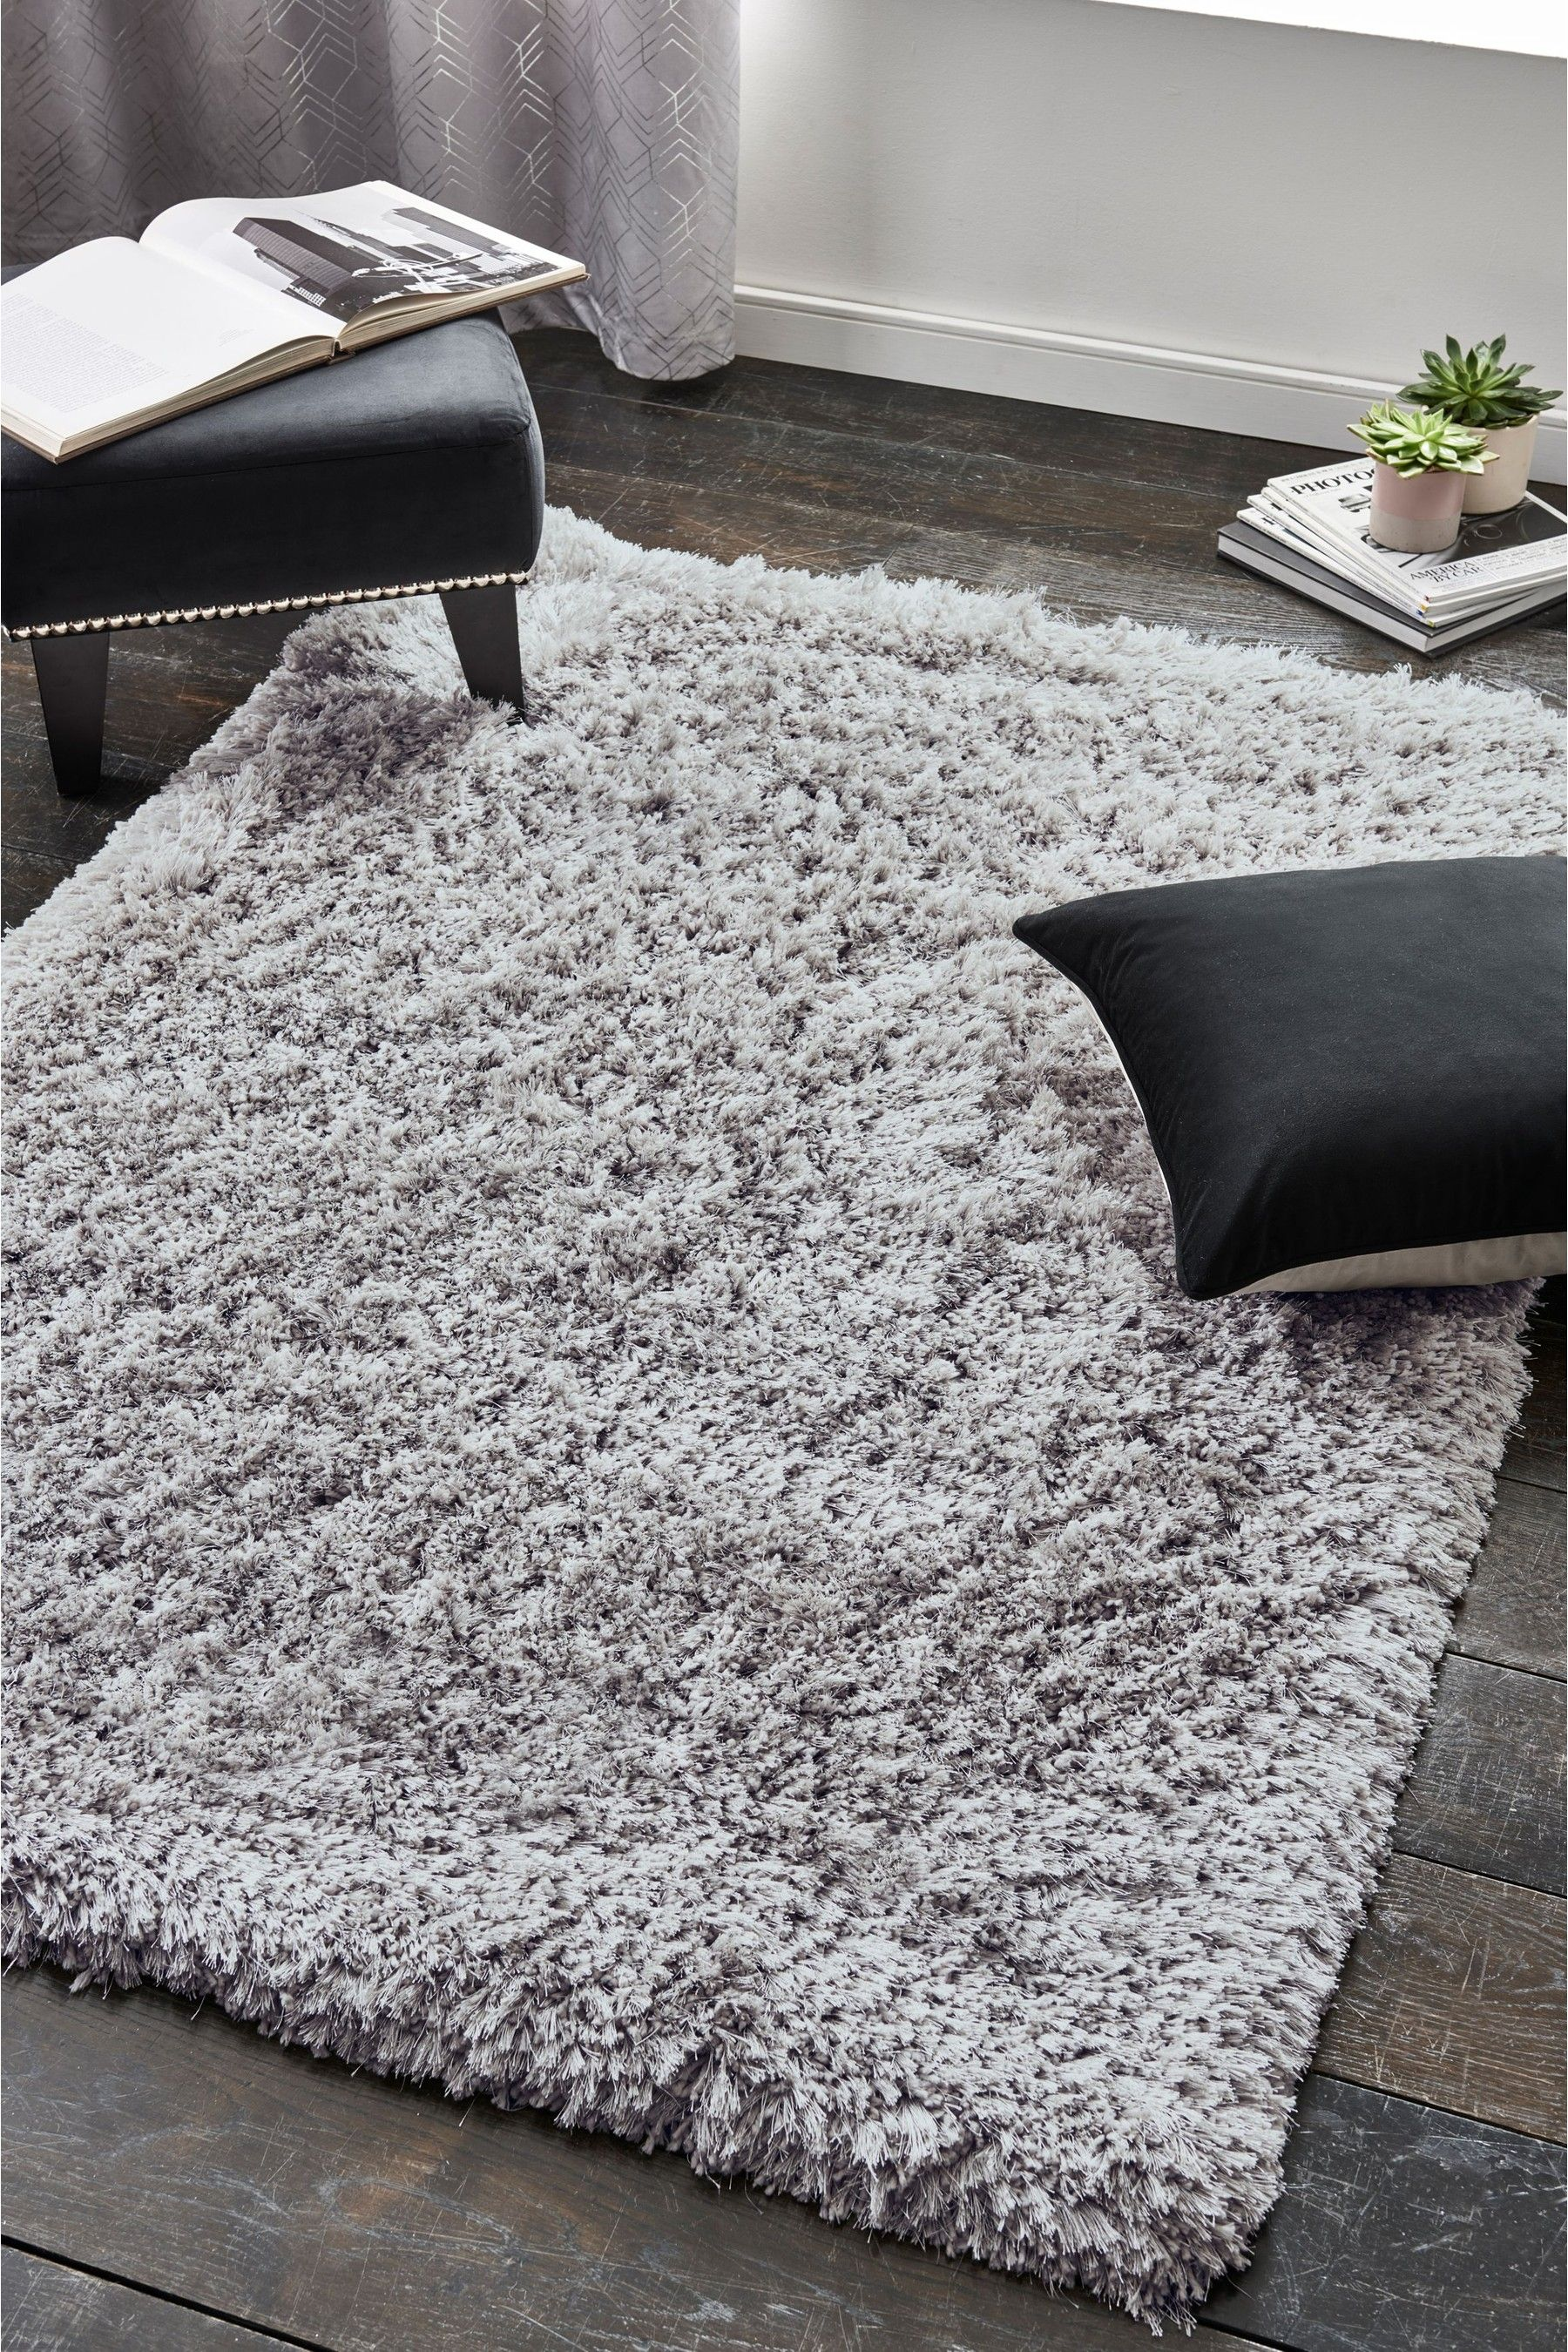 A Supersoft High Cl Luxurious Rug With Sumptuous Shiny Silk Effect Super Deep Shaggy Pile Adds Touch Of Luxury To Any Home This Can Be